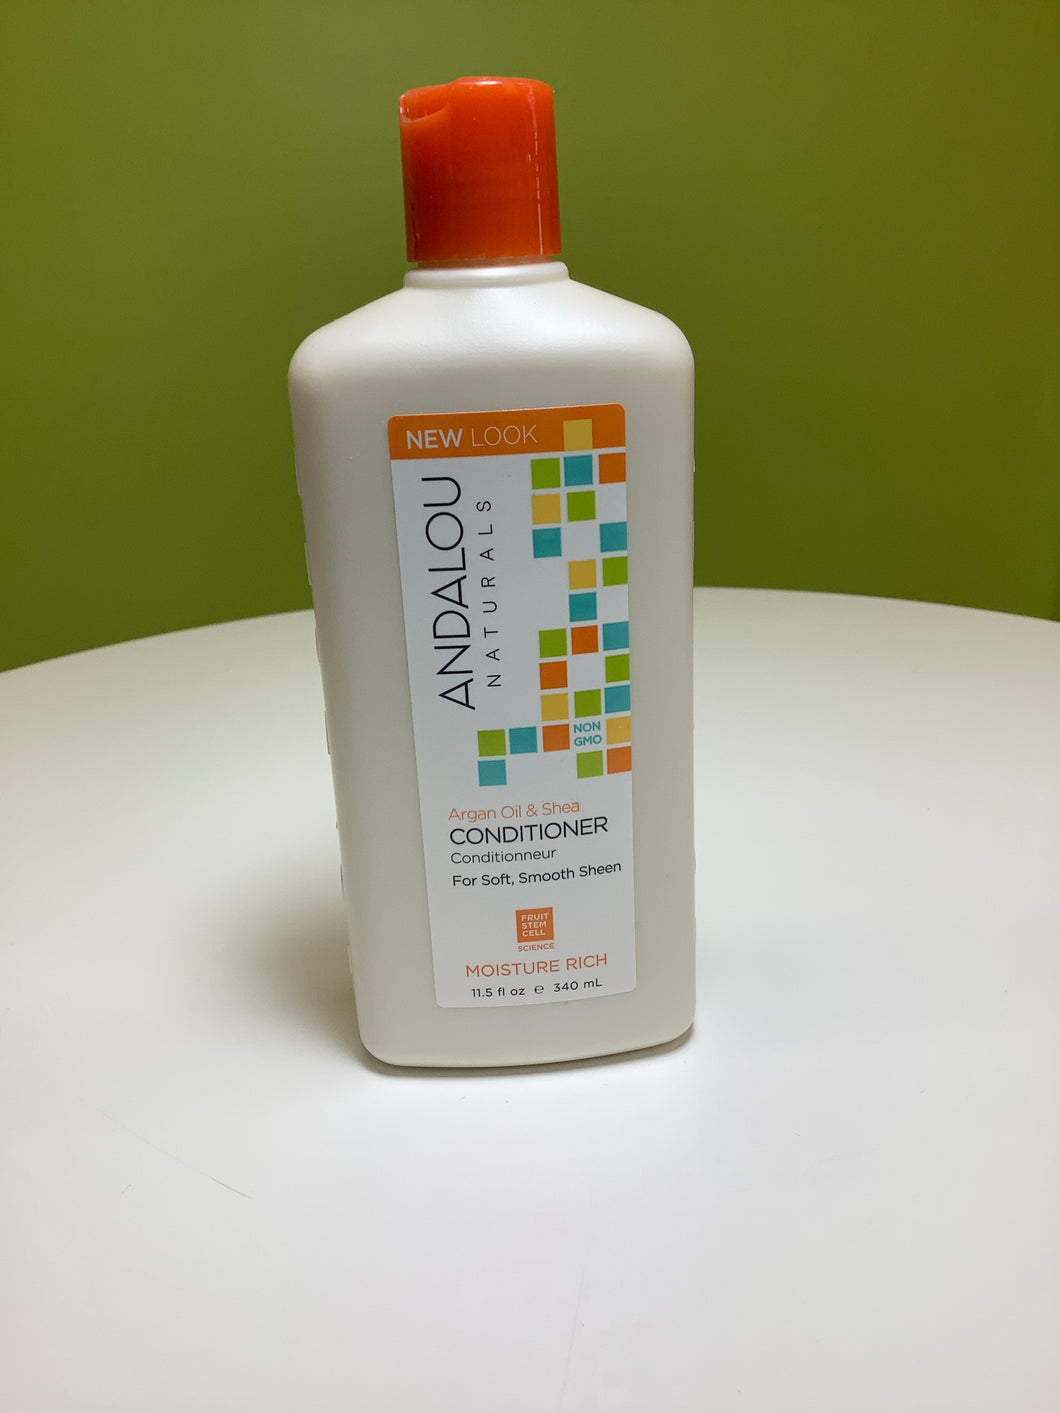 Andalou Naturals Argan Oil and Shea Conditioner